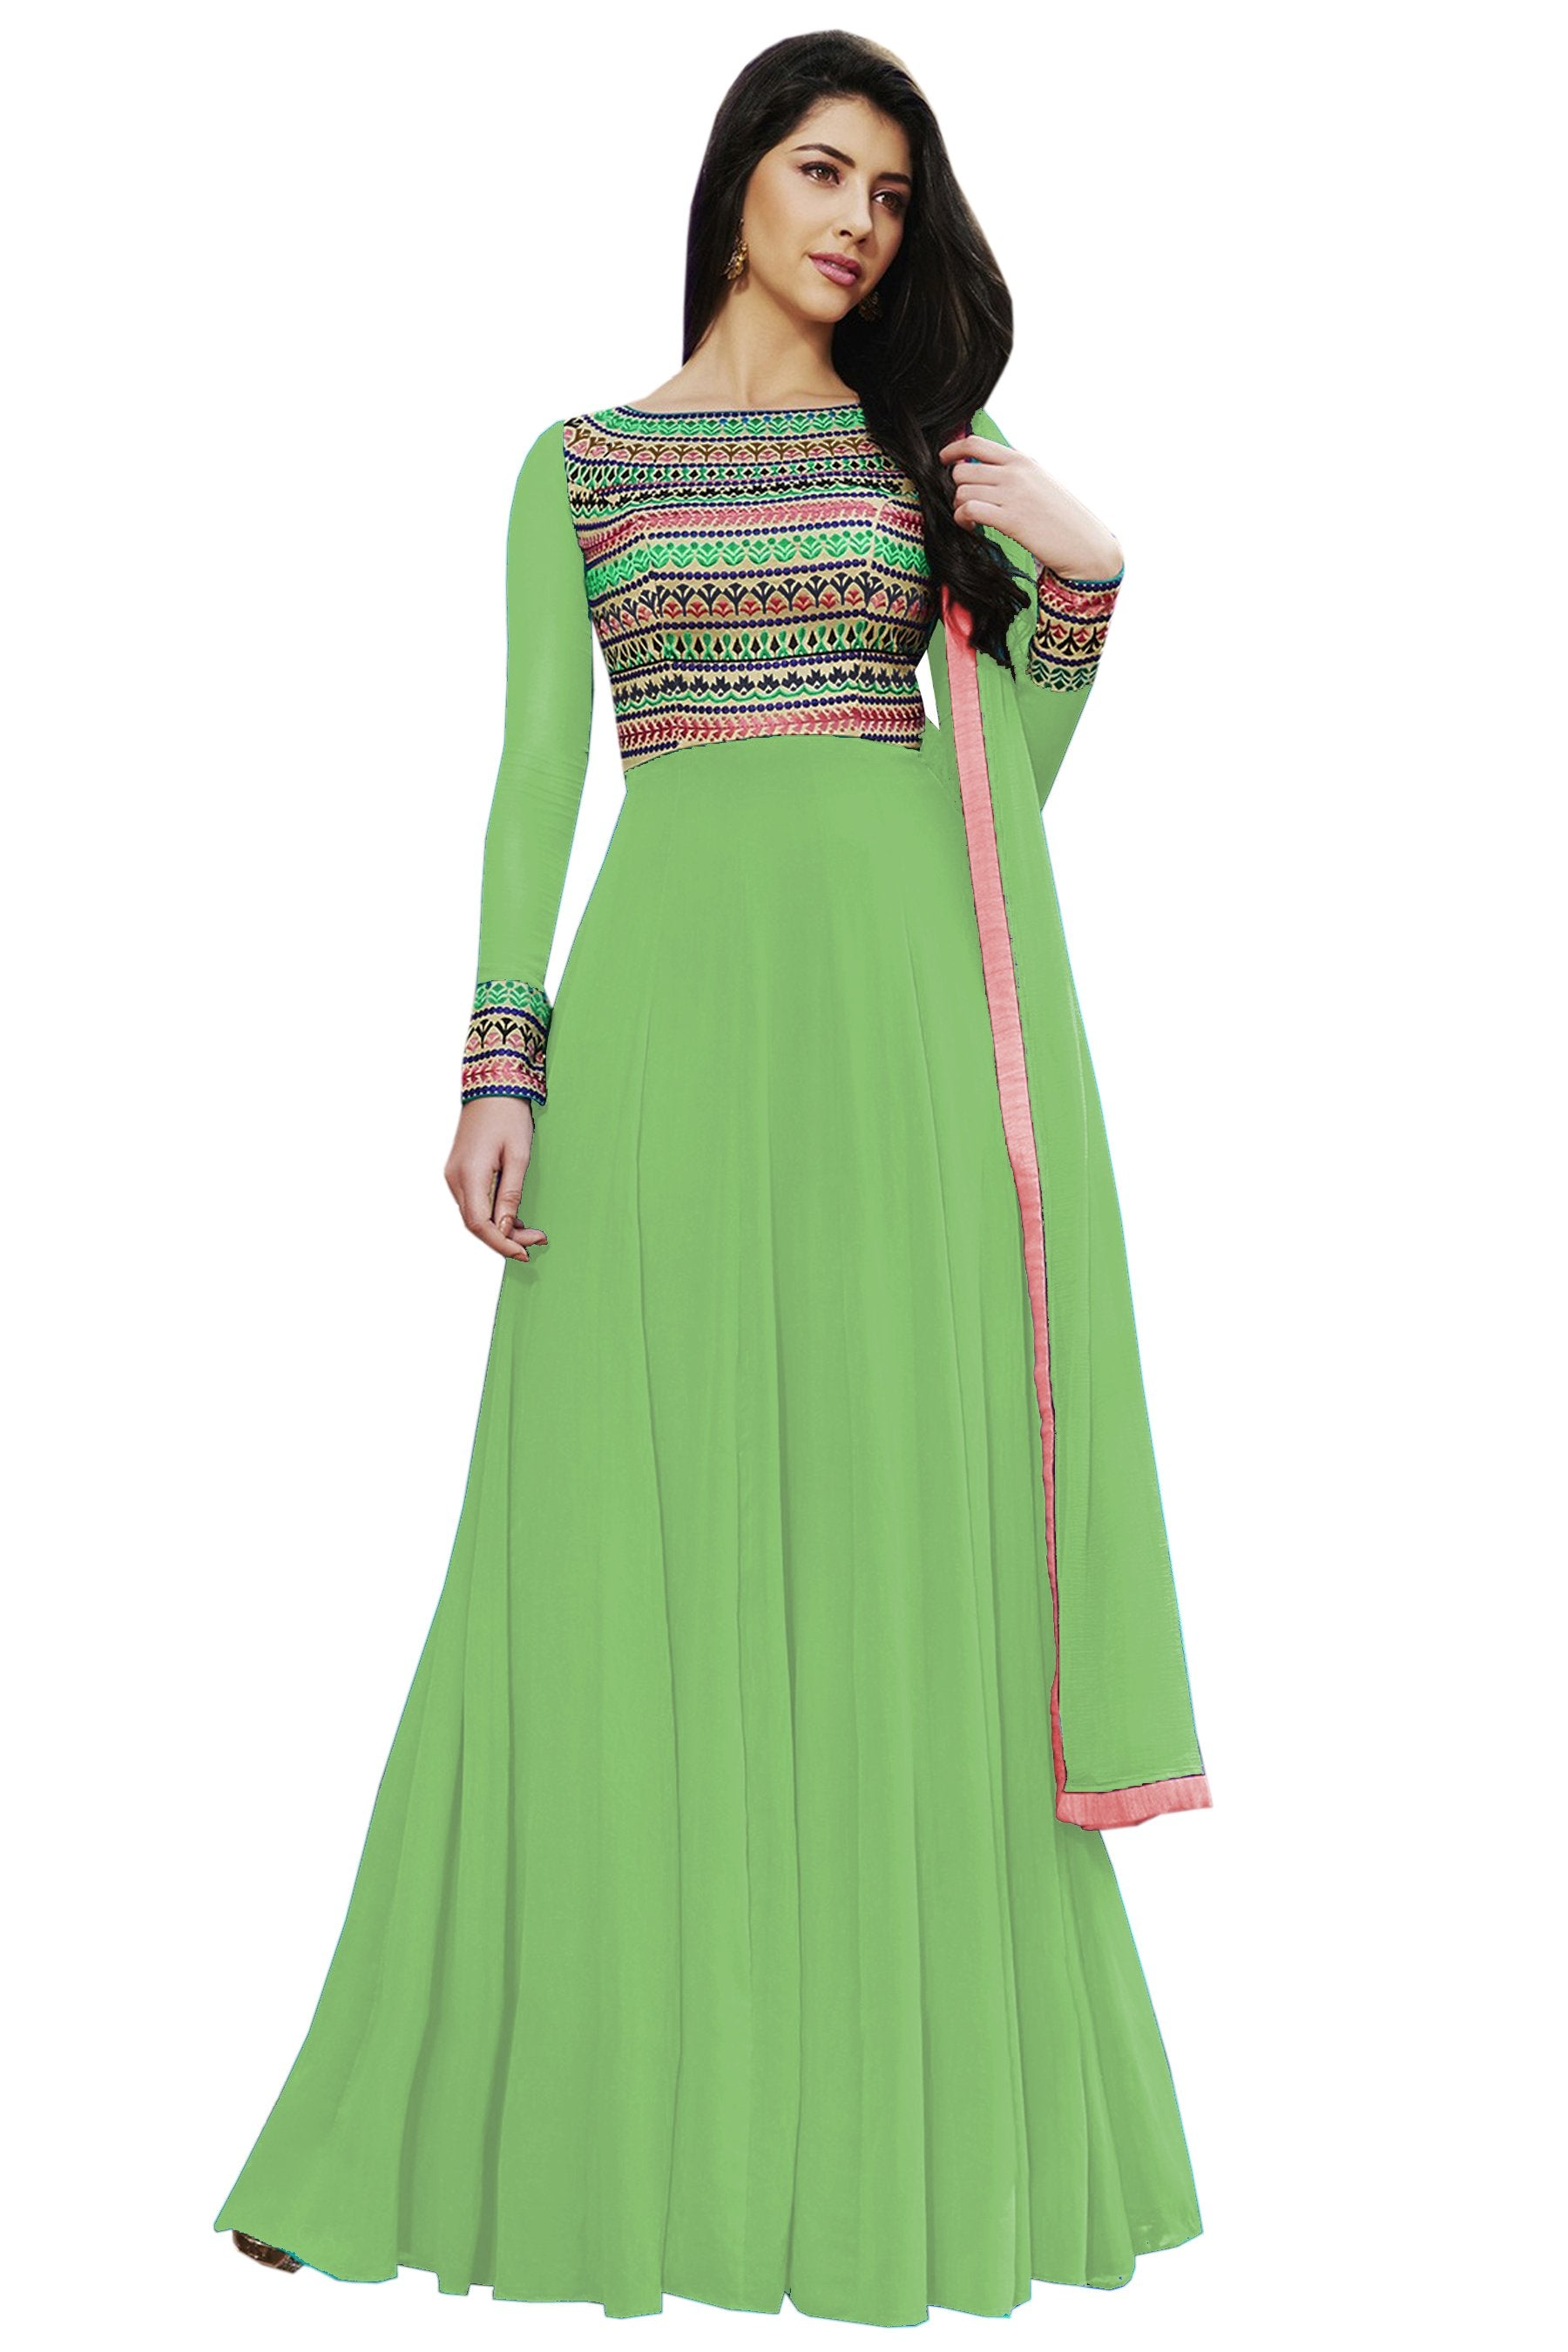 2834abd0f9 Buy Pista Color Georgette Semi Stitched Salwar Kameez | Zinnga